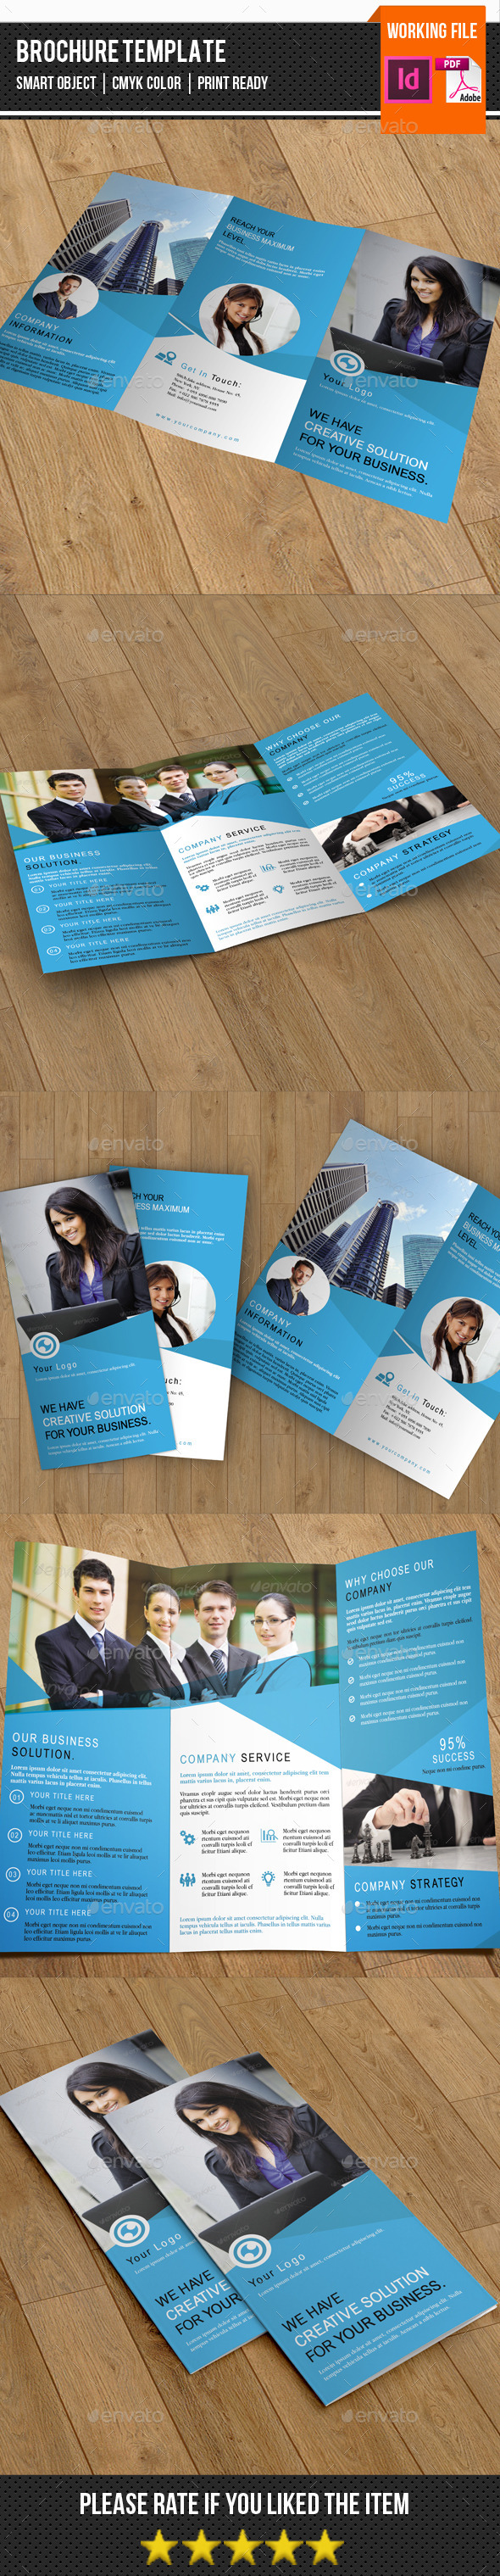 Corporate Trifold Brochure-V243 - Corporate Brochures